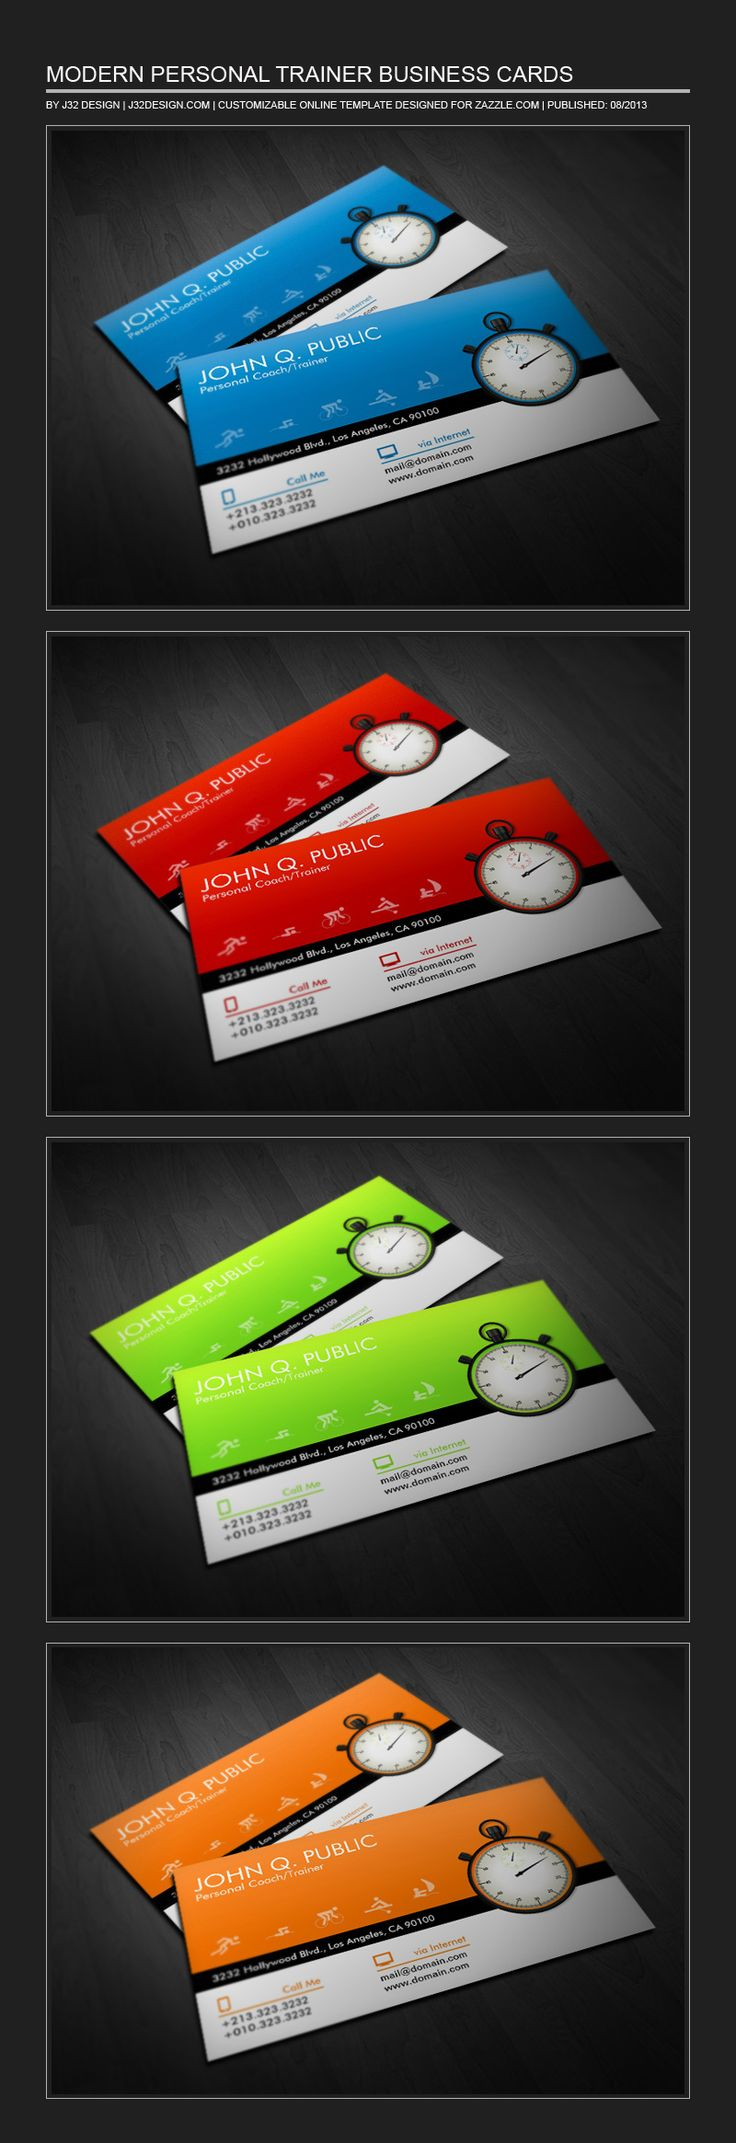 7 Best Customizable Business Cards Images On Pinterest Business